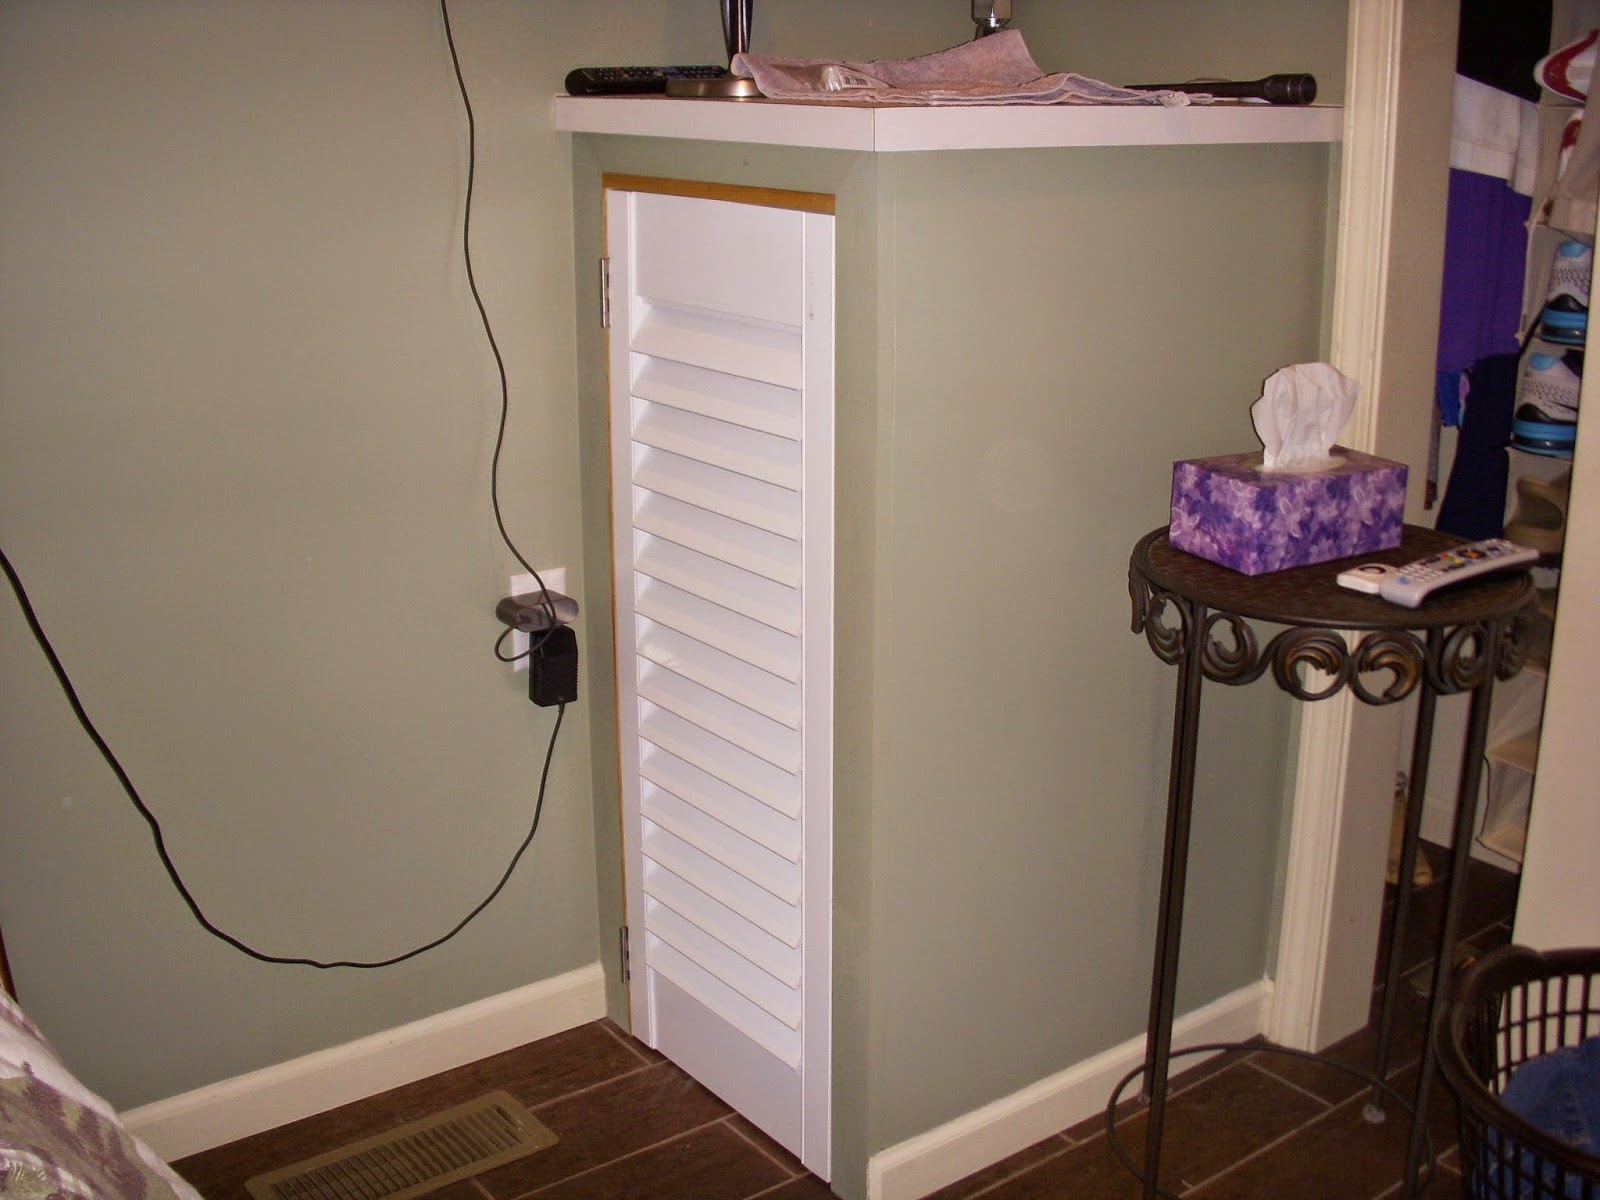 Drum roll!! Now introducing the prosthetic leg charging cabinet!!